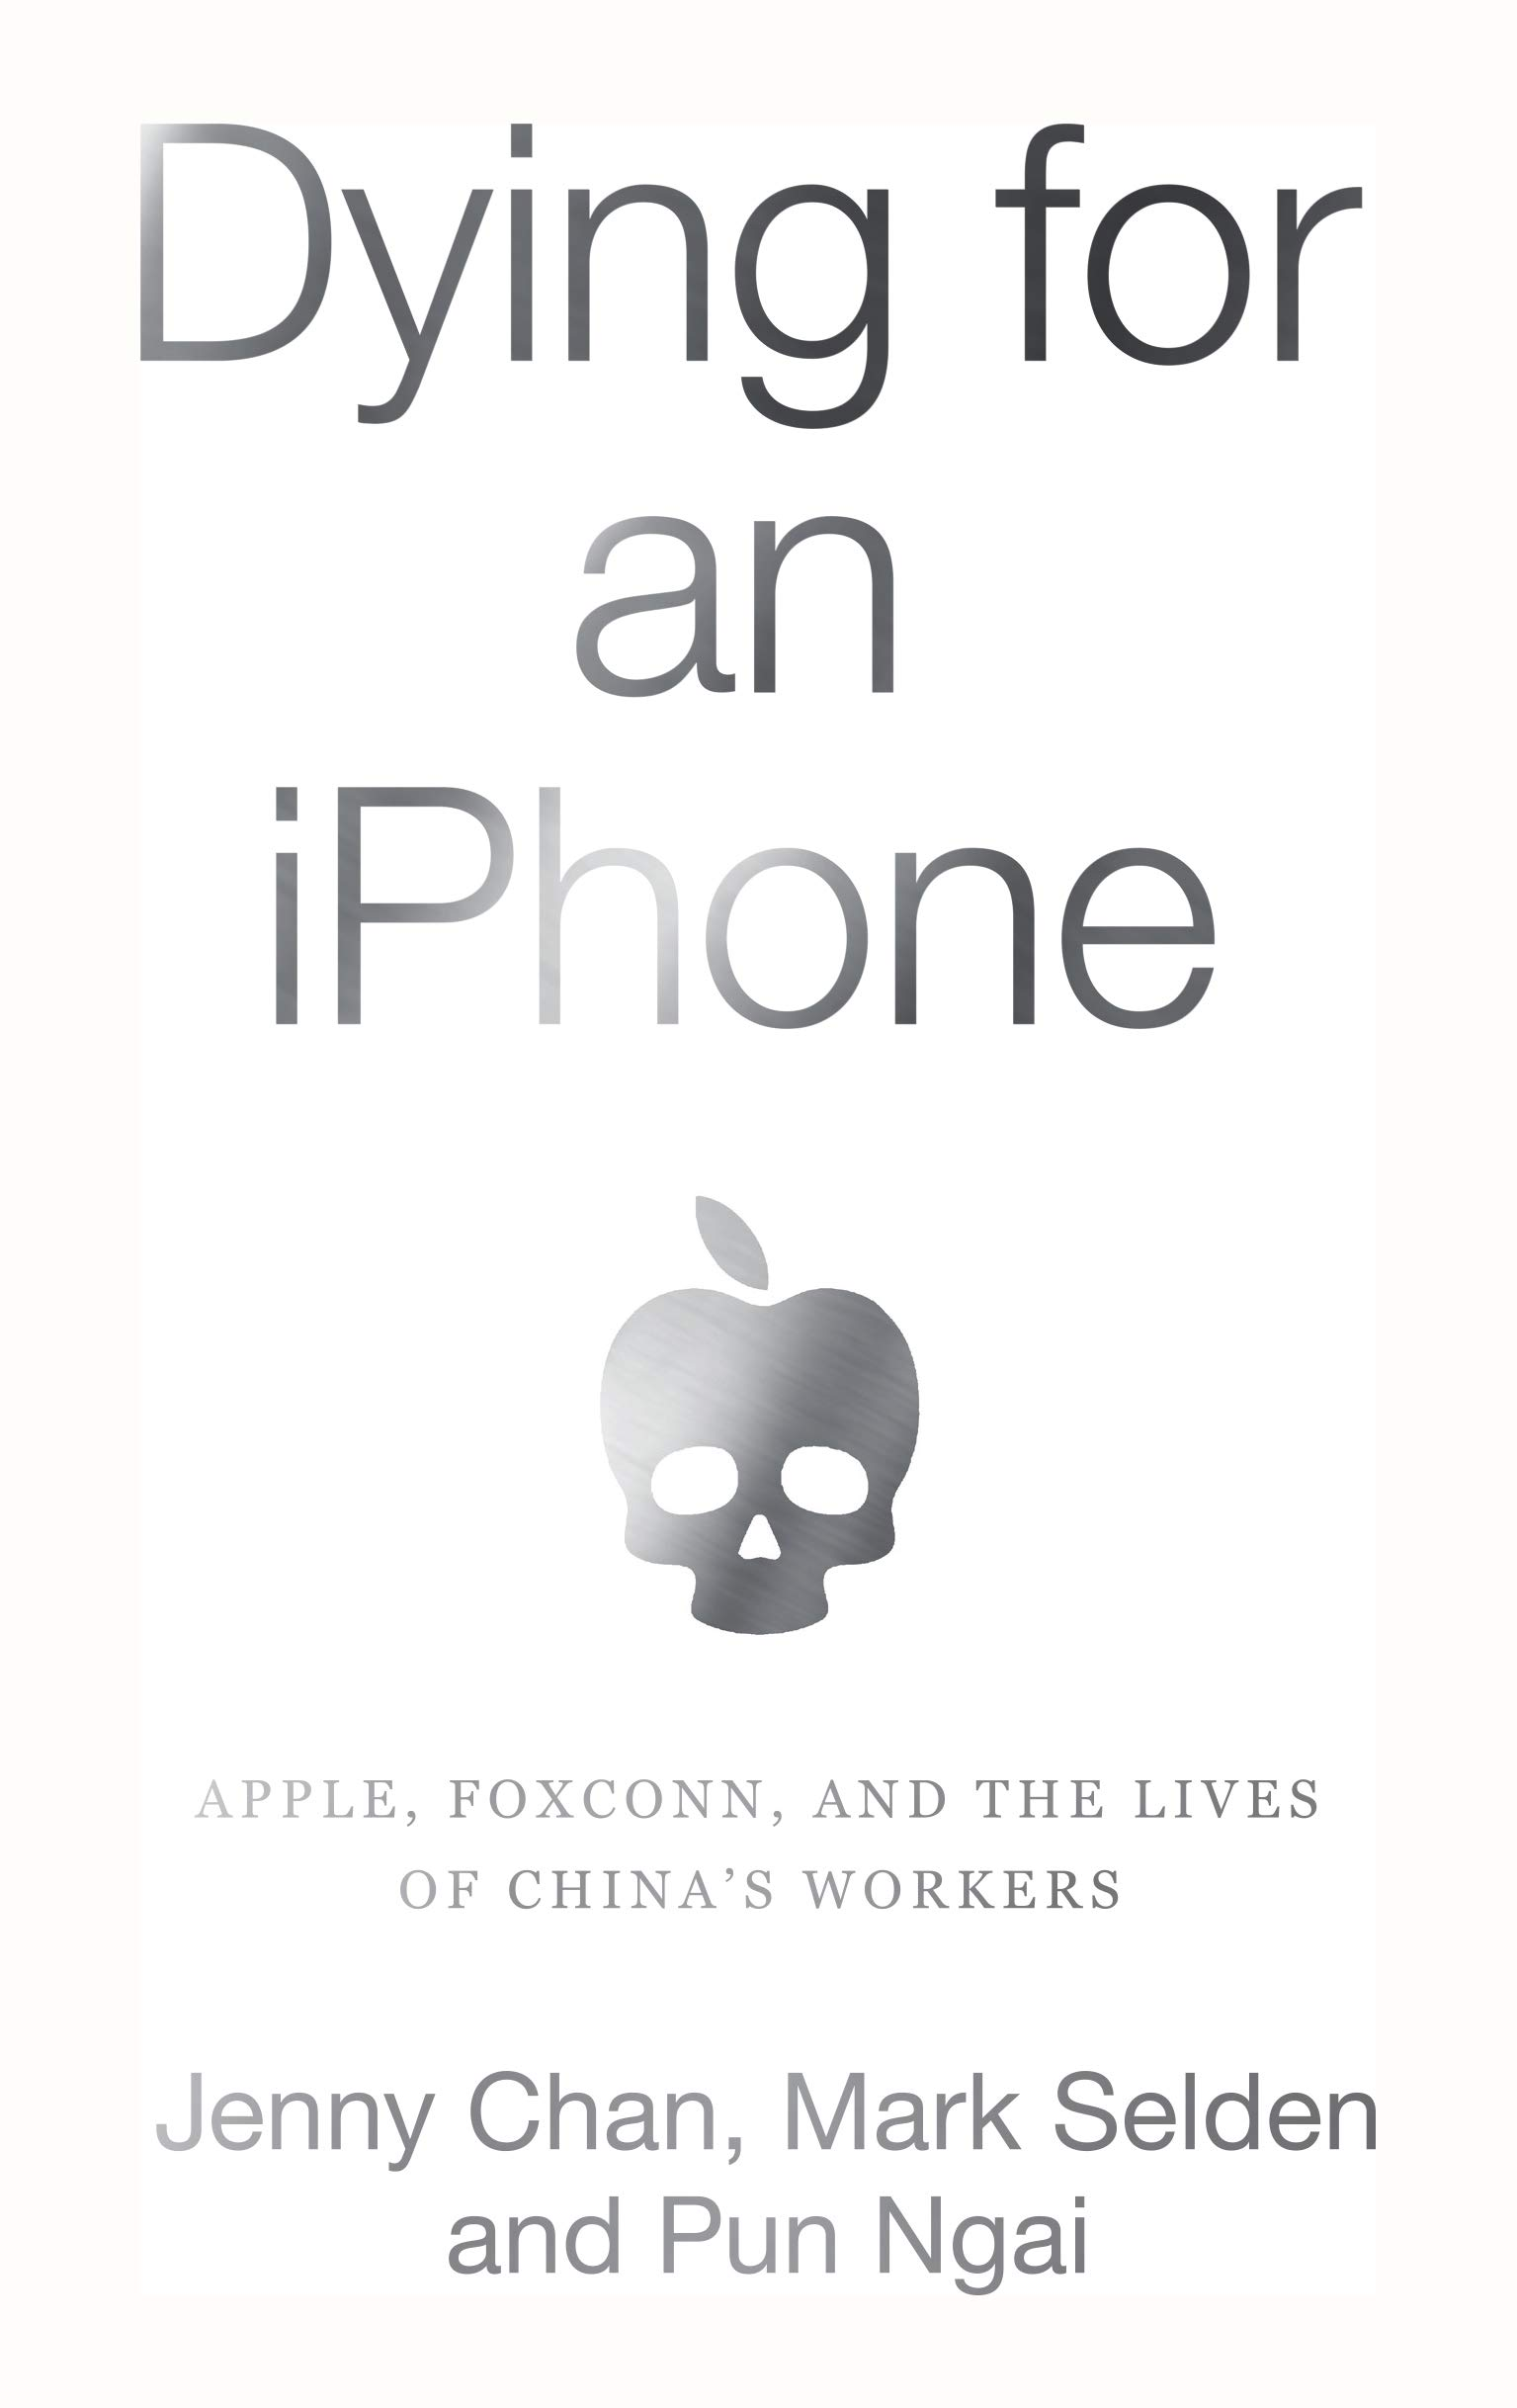 Amazon.com: Dying for an iPhone: Apple, Foxconn, and The Lives of China's Workers: 9781642591248: Chan, Jenny, Selden, Mark, Ngai, Pun: Books